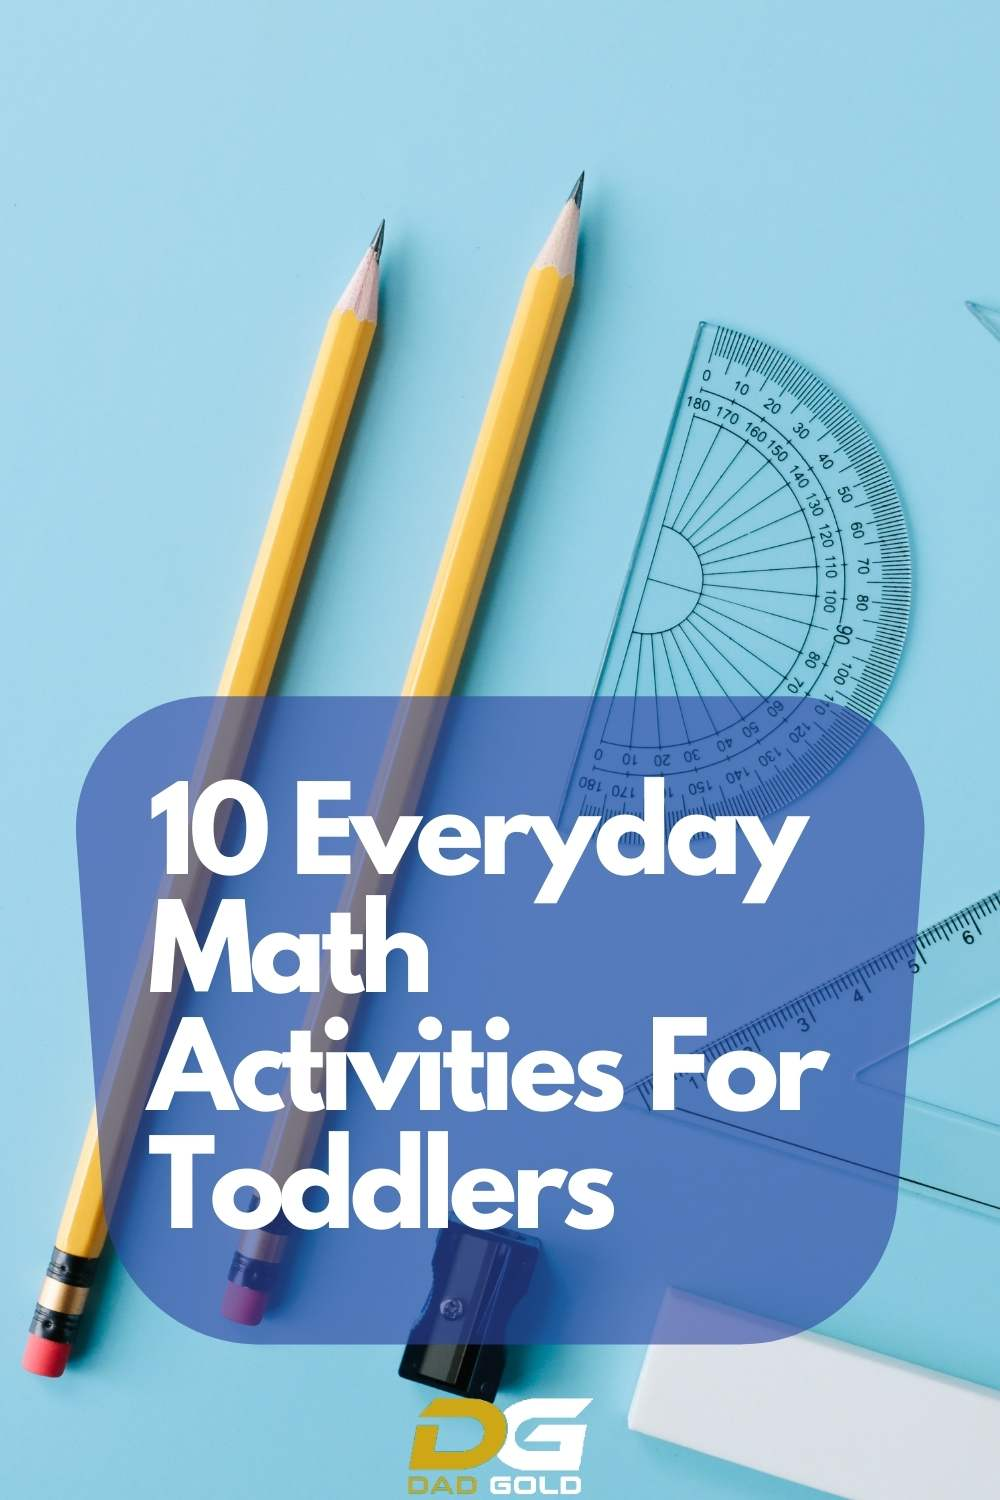 pencils compass and text that says 10 everyday math activities for toddlers